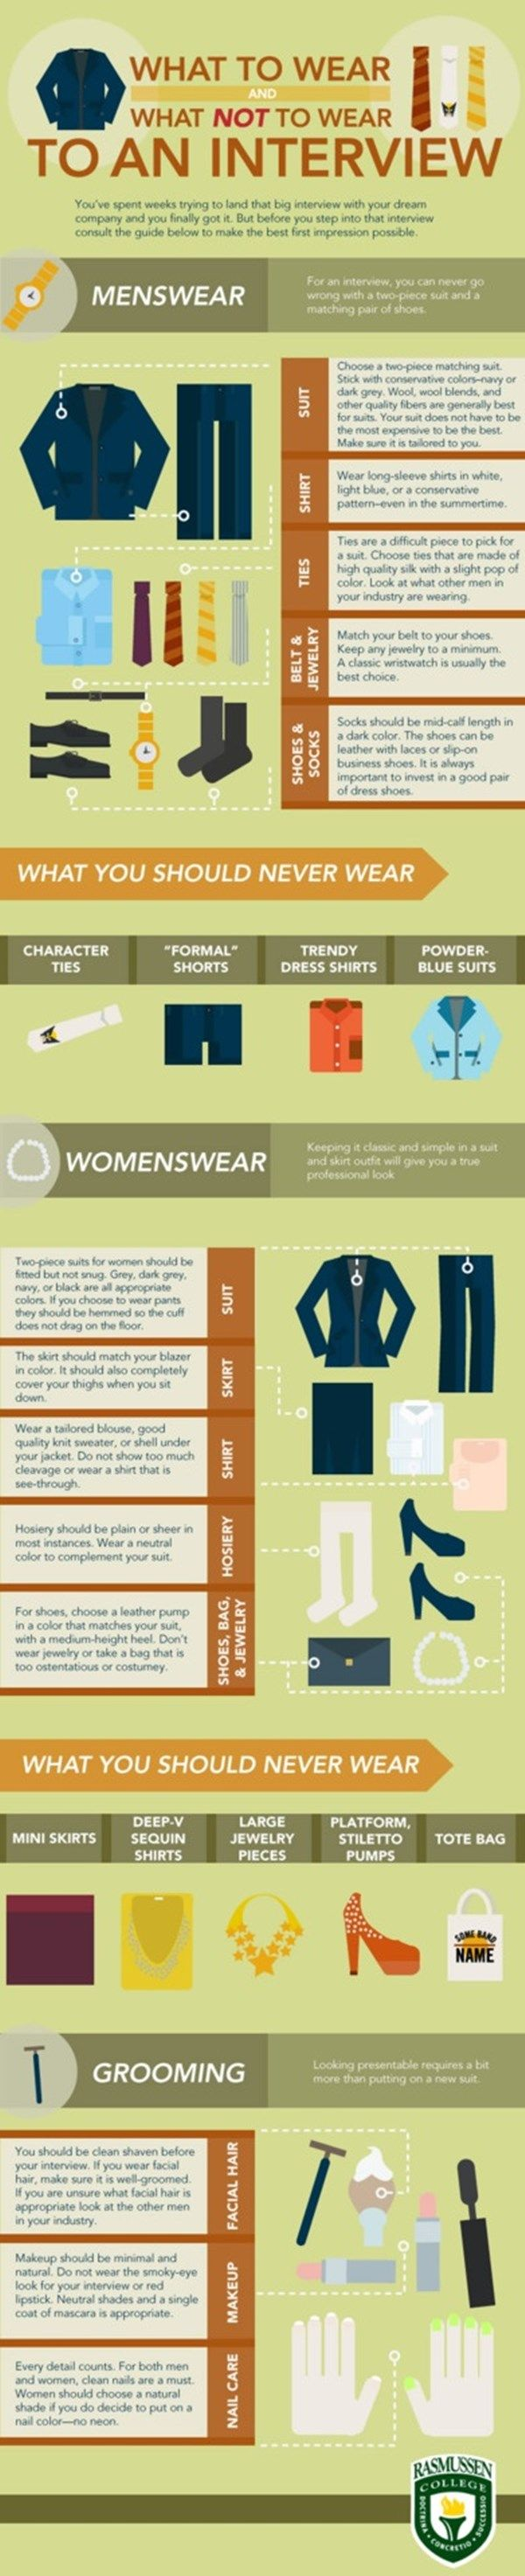 Dress to Impress: Do's and Don'ts for Job Interviews #Infographic #tiporaphic